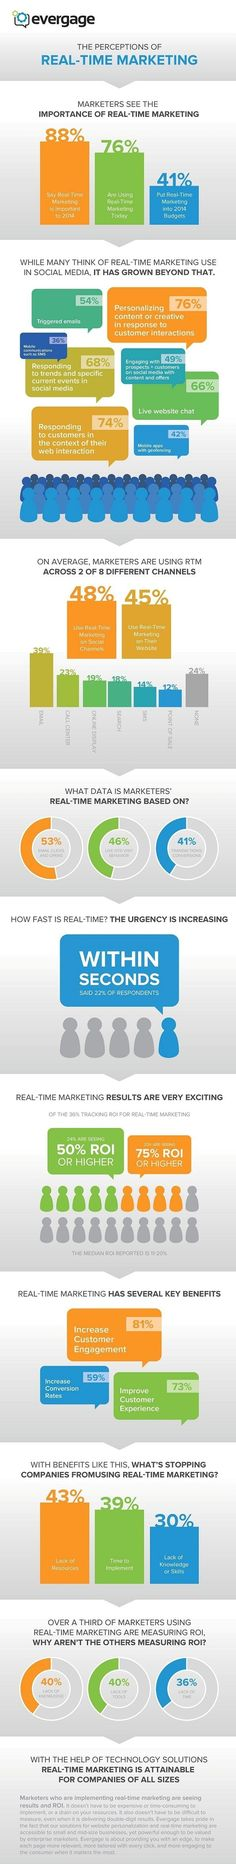 The perception of real-time marketing